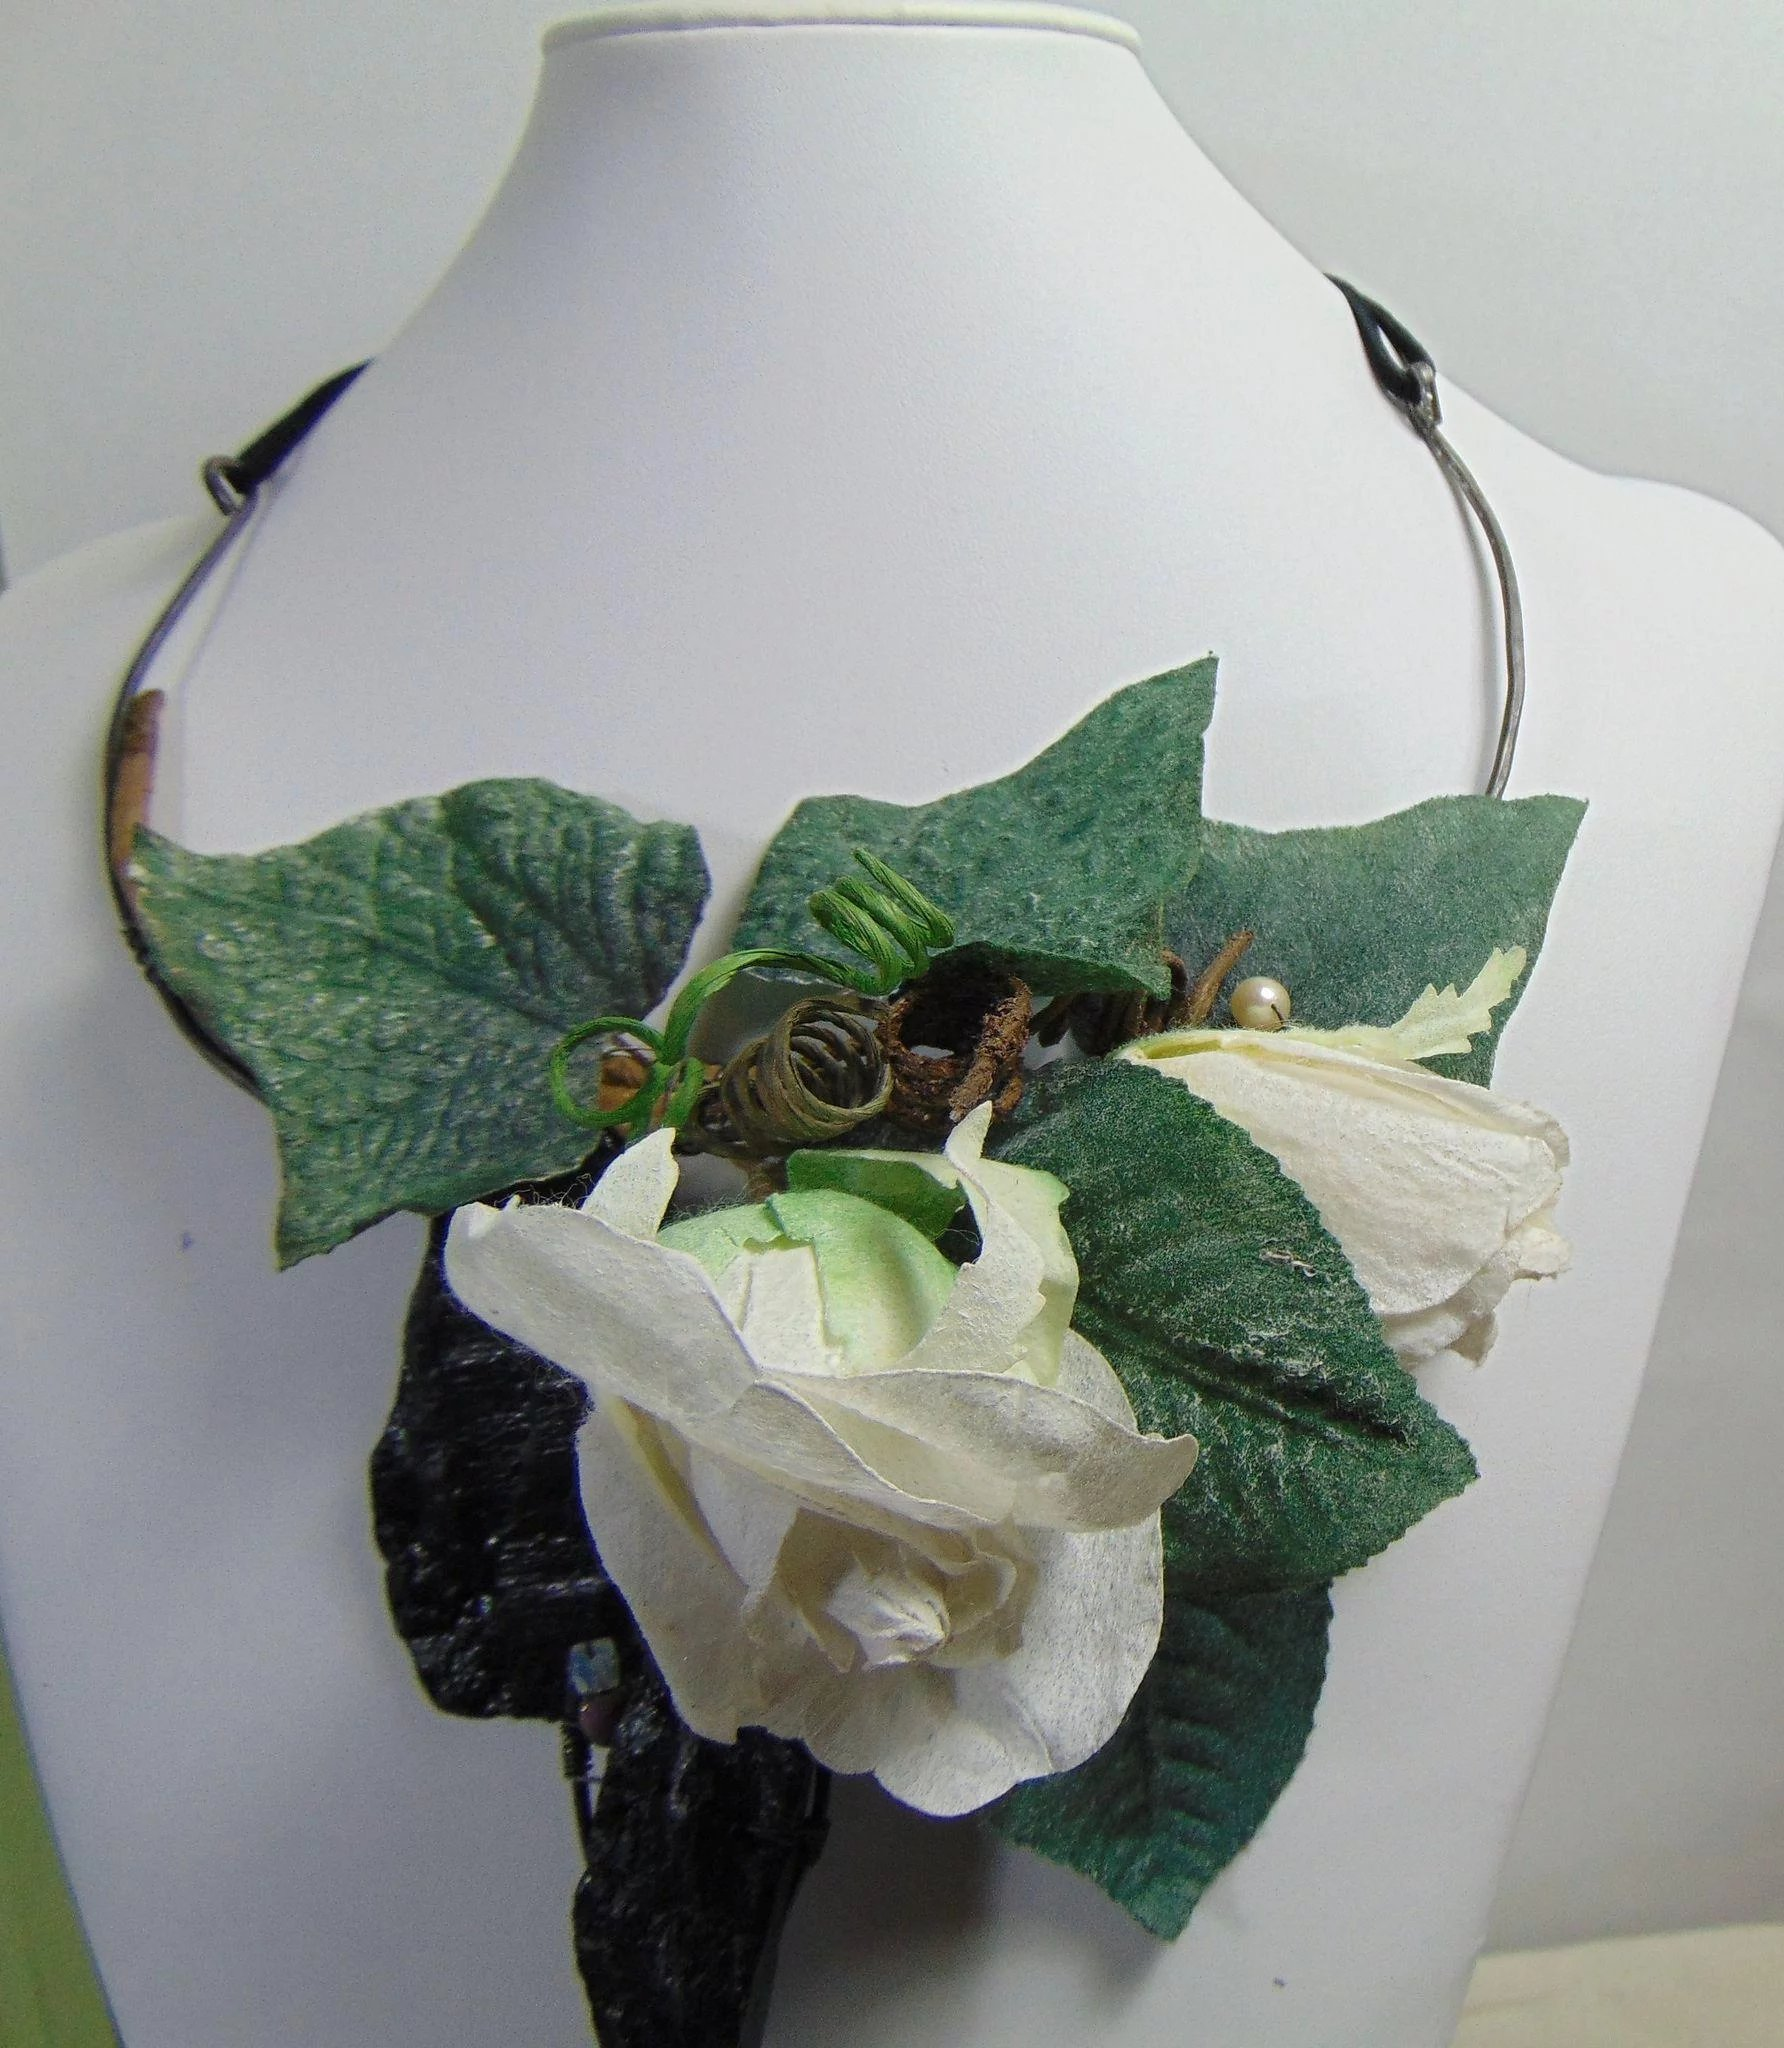 Rock paper flowers n annealed steel necklace lahoote jewelry rock paper flowers n annealed steel necklace click to expand mightylinksfo Gallery